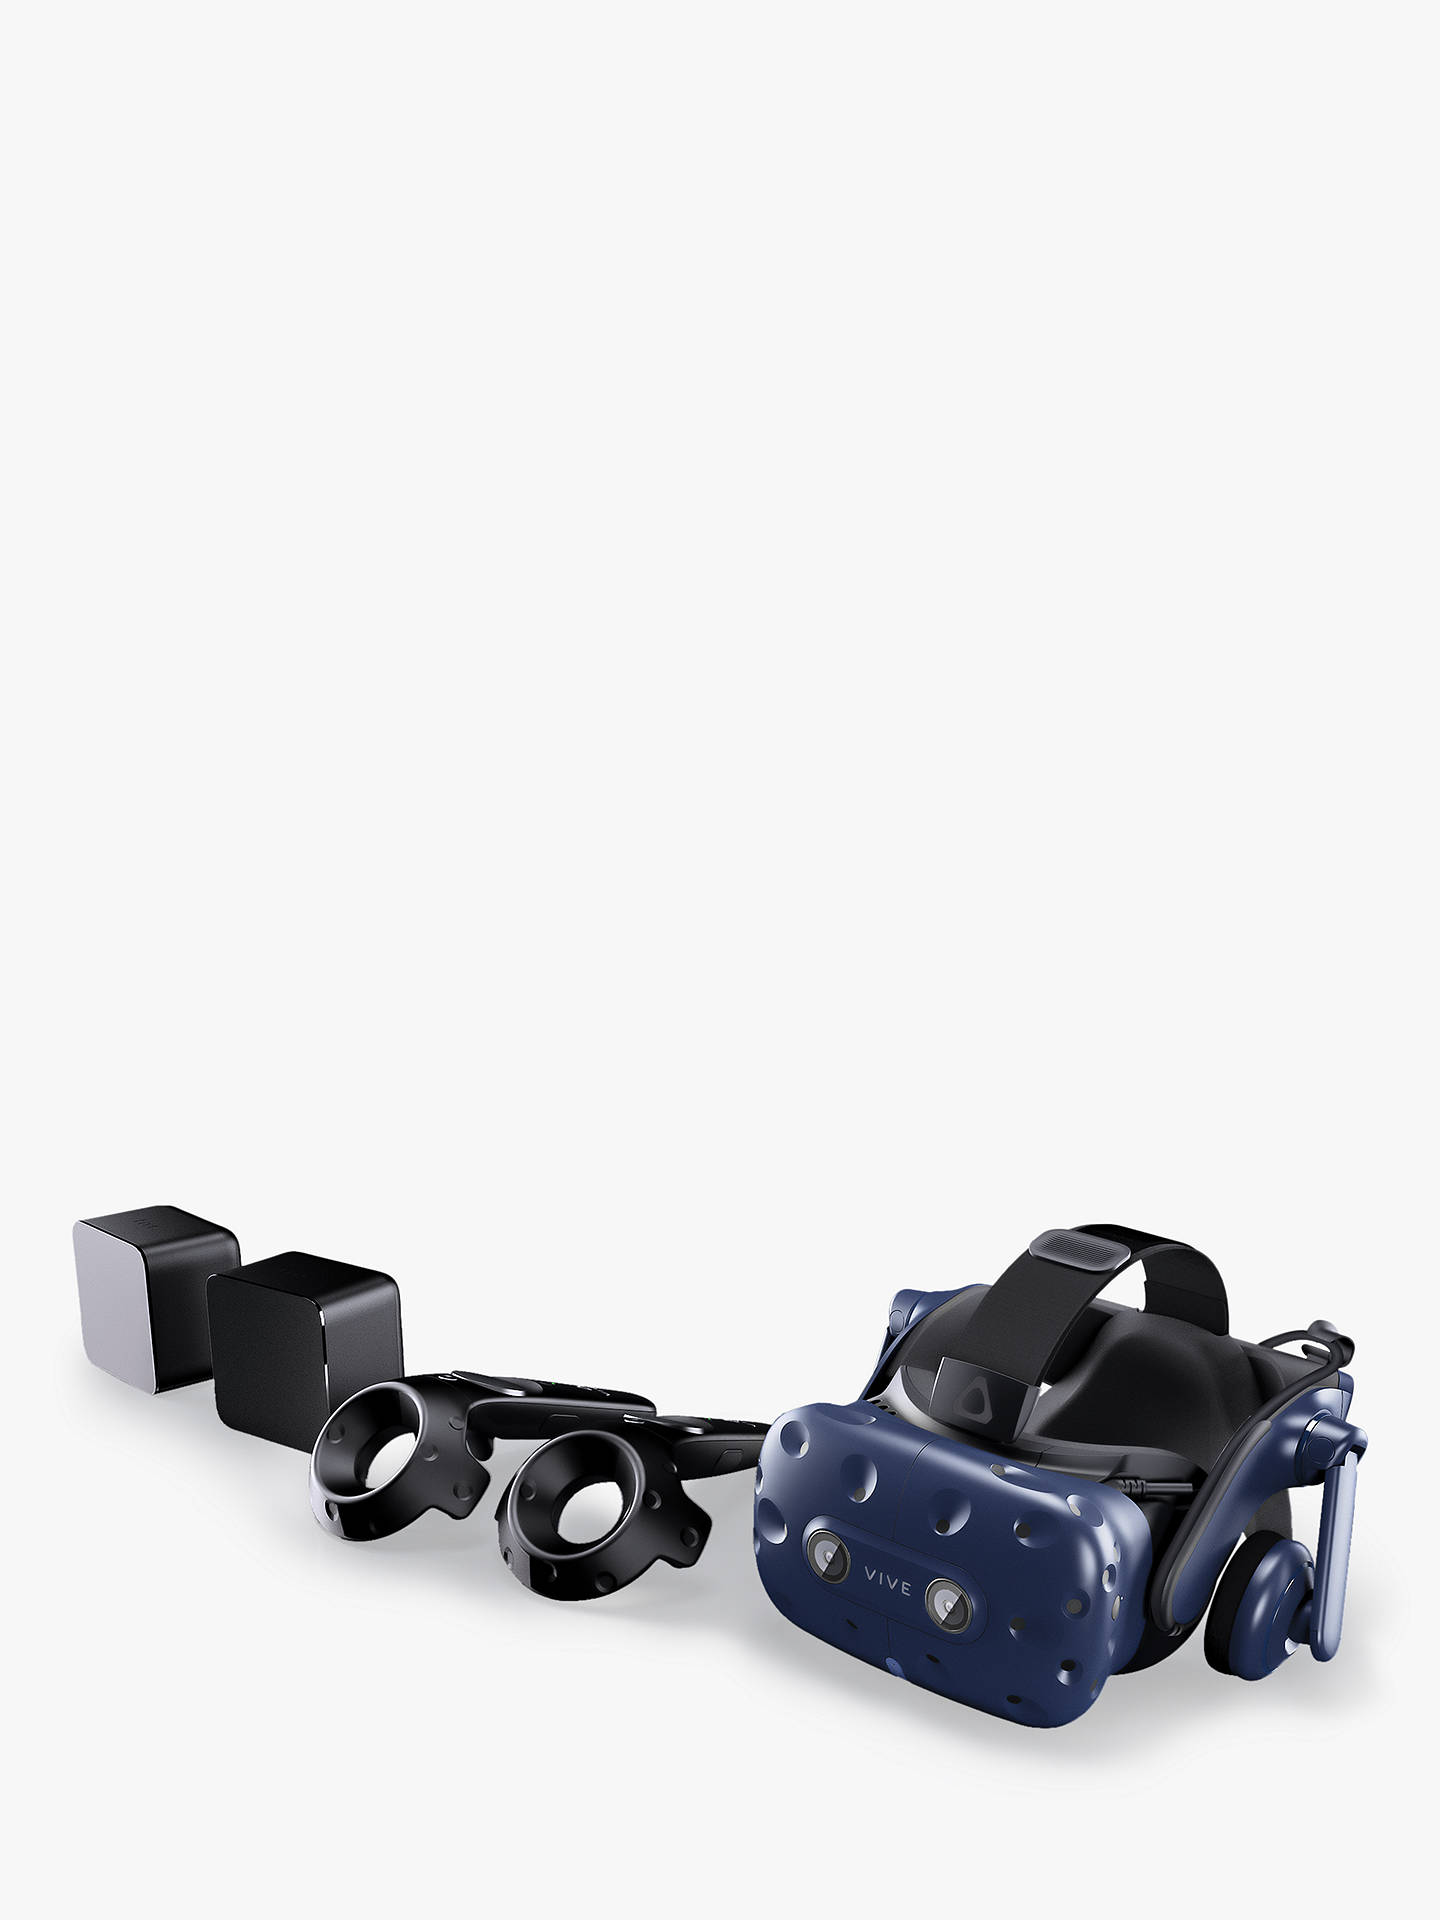 Buy HTC Vive Pro VR Starter Kit, VR Headset, x2 Base Stations, x2 Controllers and Accessories Online at johnlewis.com